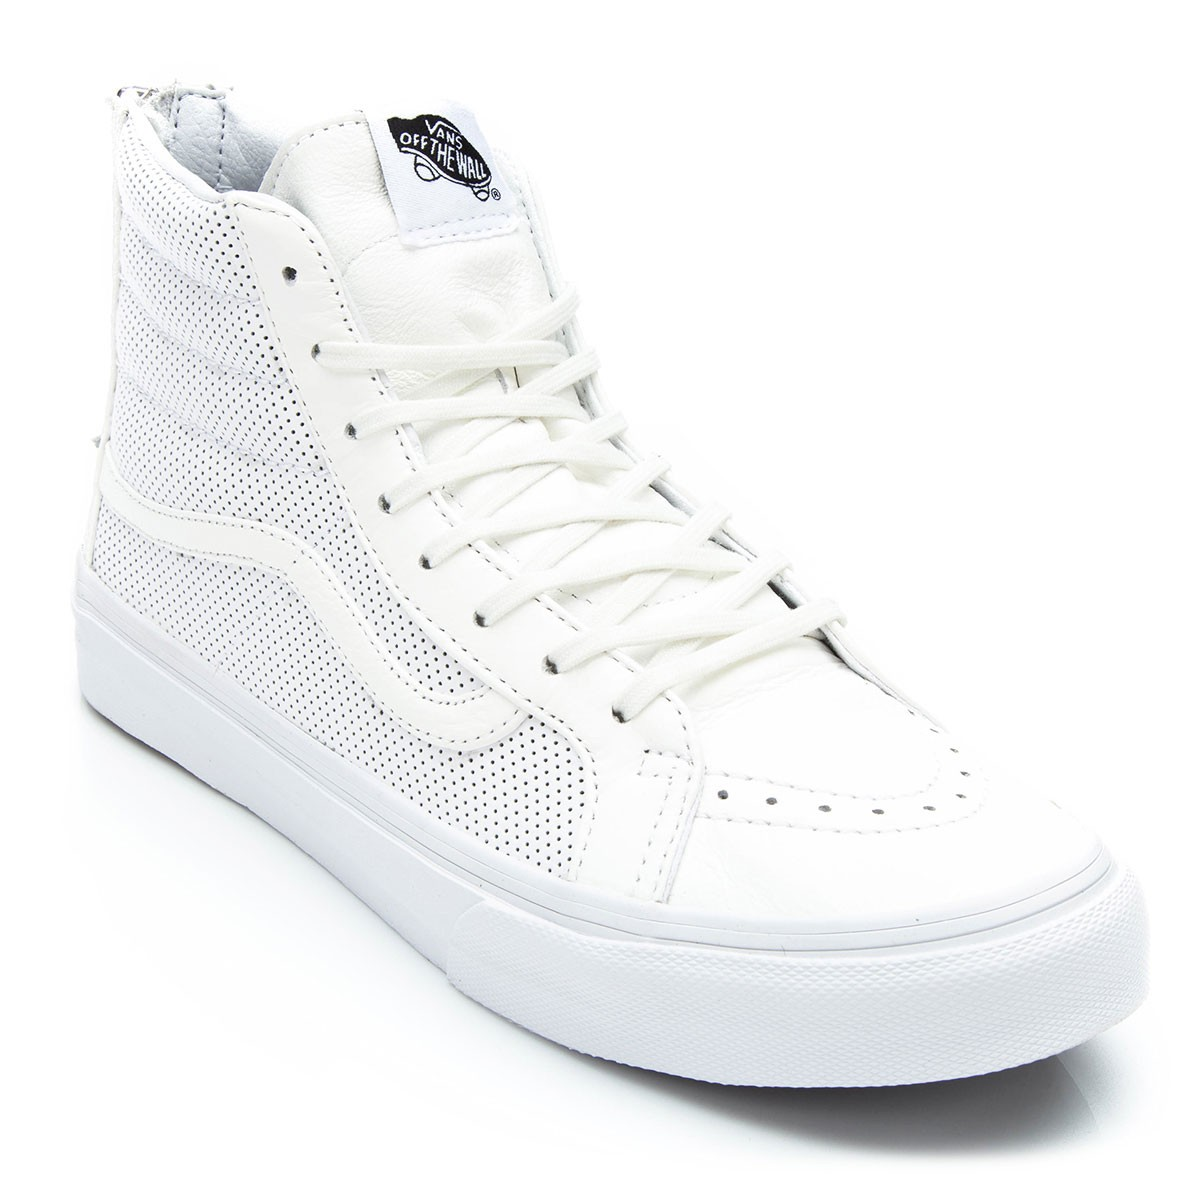 9715bdeba3 Buy 2 OFF ANY all white leather high top vans CASE AND GET 70% OFF!